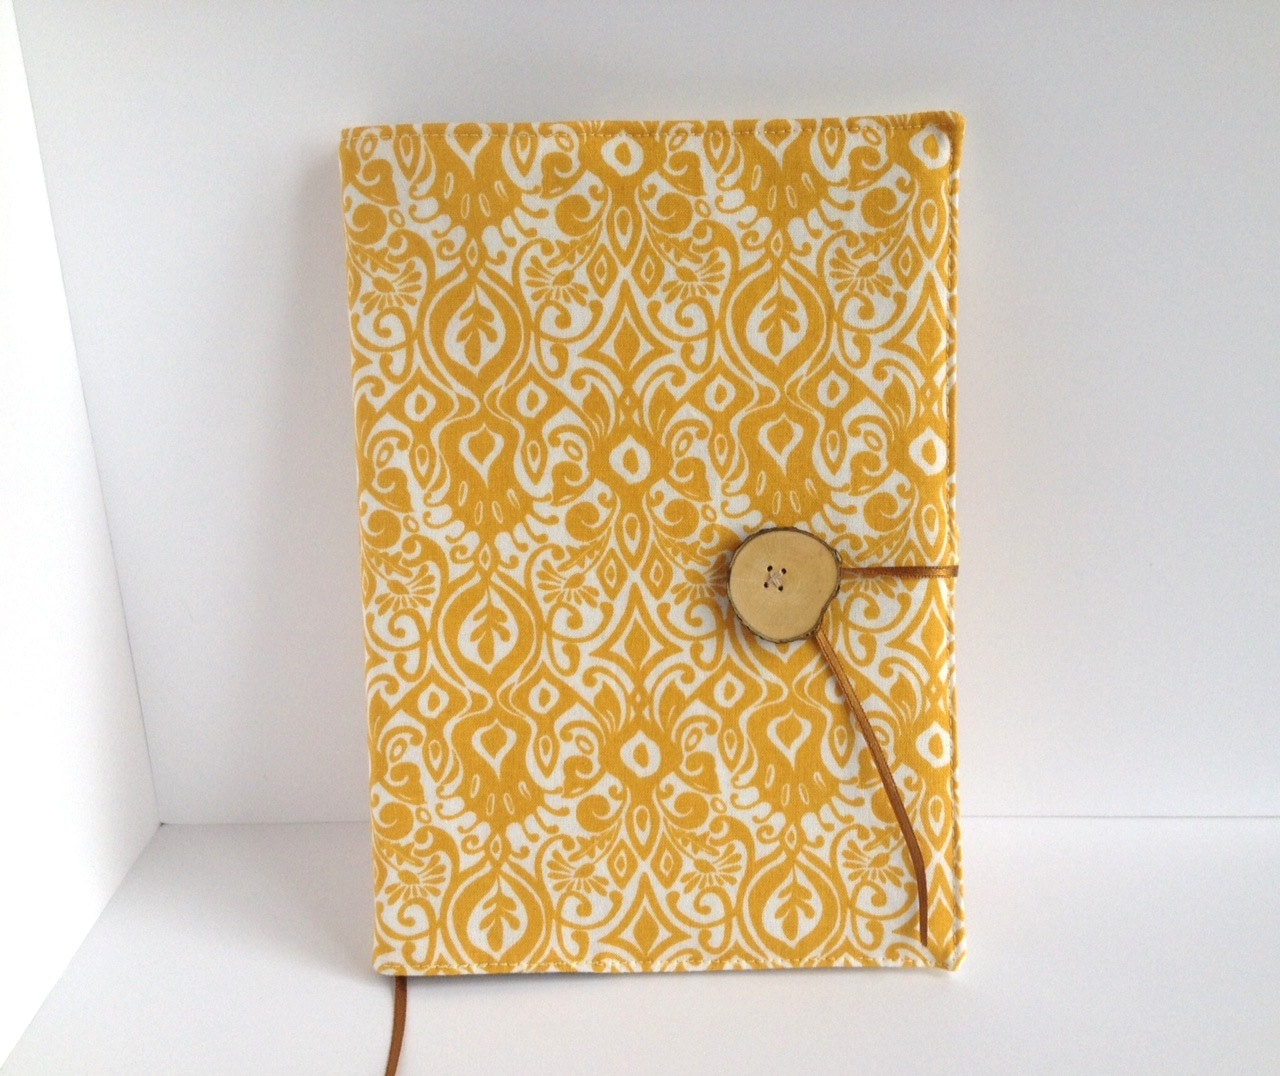 How To Make A Reusable Book Cover ~ Fabric covered notebook reusable book cover made by